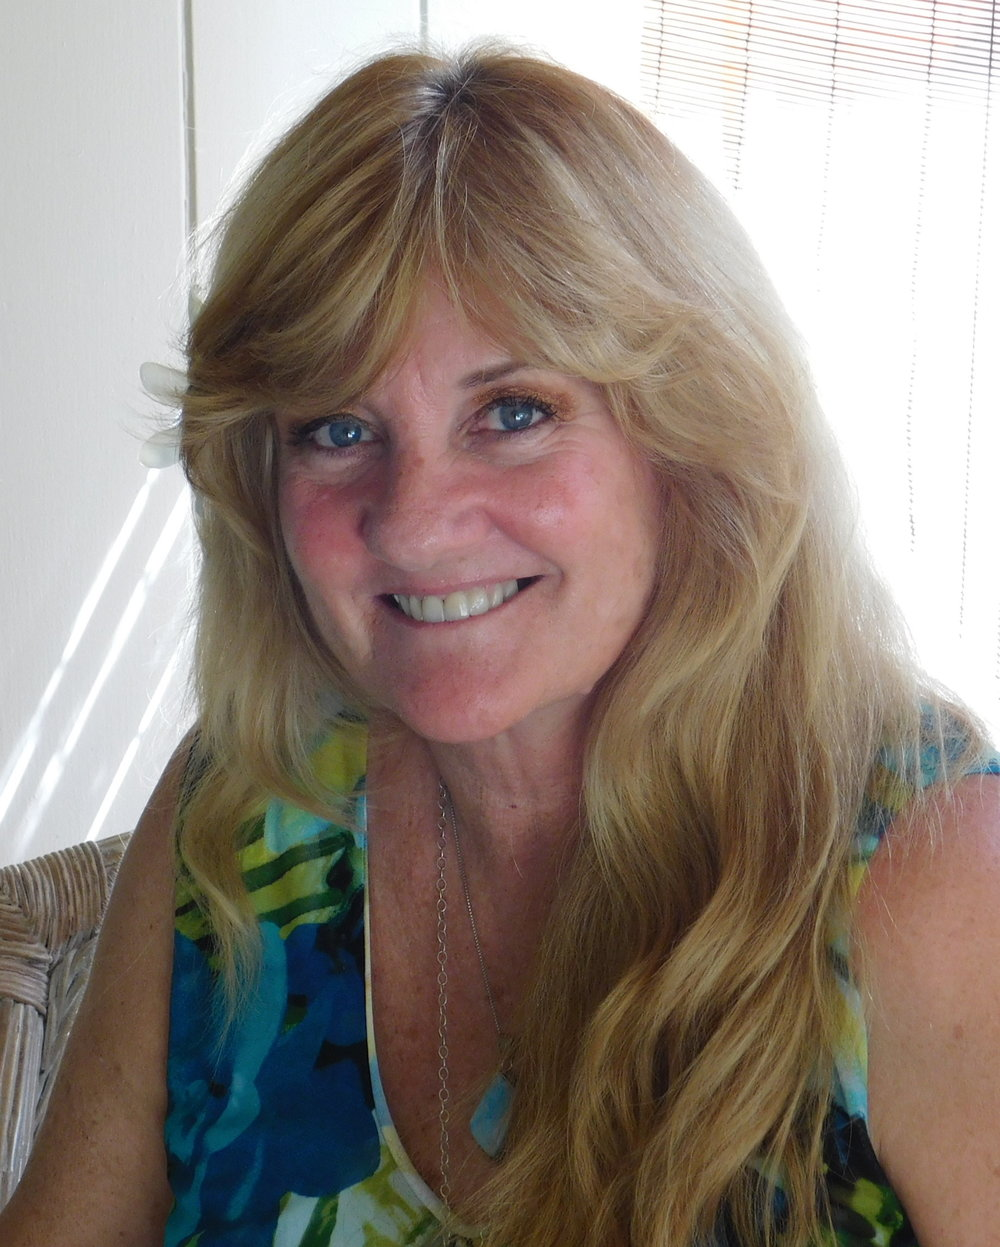 Transformational Hypnotherapy Hawaii - Booth #16Want some answers to solve a problem or make a decision? Bring your question and find the answers you seek deep inside with the help of a Psychic Card Reading or Empathic, Trance State Induction Process.Expo Special - $49 - 30 minute or $79 - 55 minute Free crystal pendulum included.